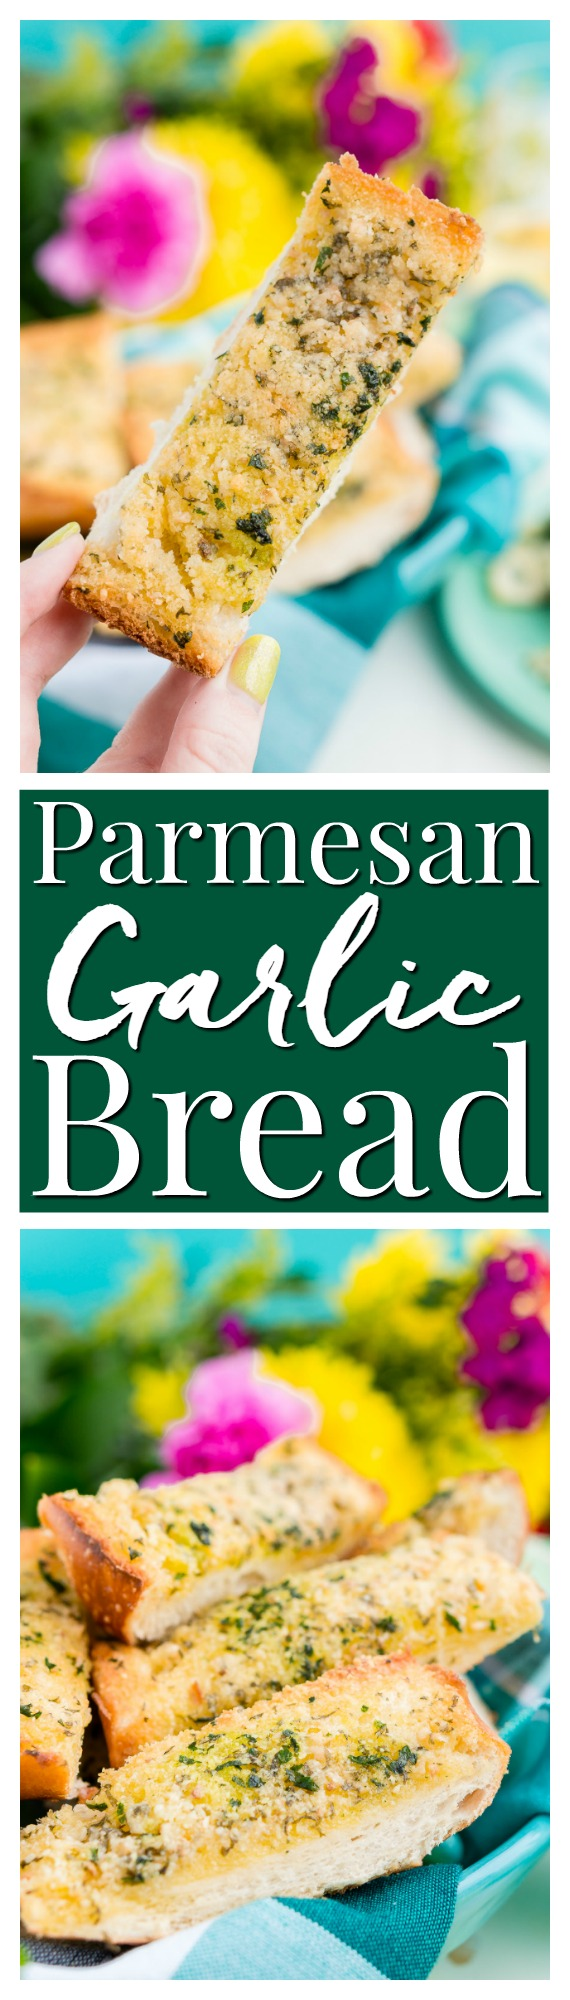 This Parmesan Garlic Bread is the perfect side for Bertolli's Frozen Chicken Florentine. A quick and easy recipe loaded with herbs, butter, and Parmesan cheese that can be whipped up in minutes! via @sugarandsoulco